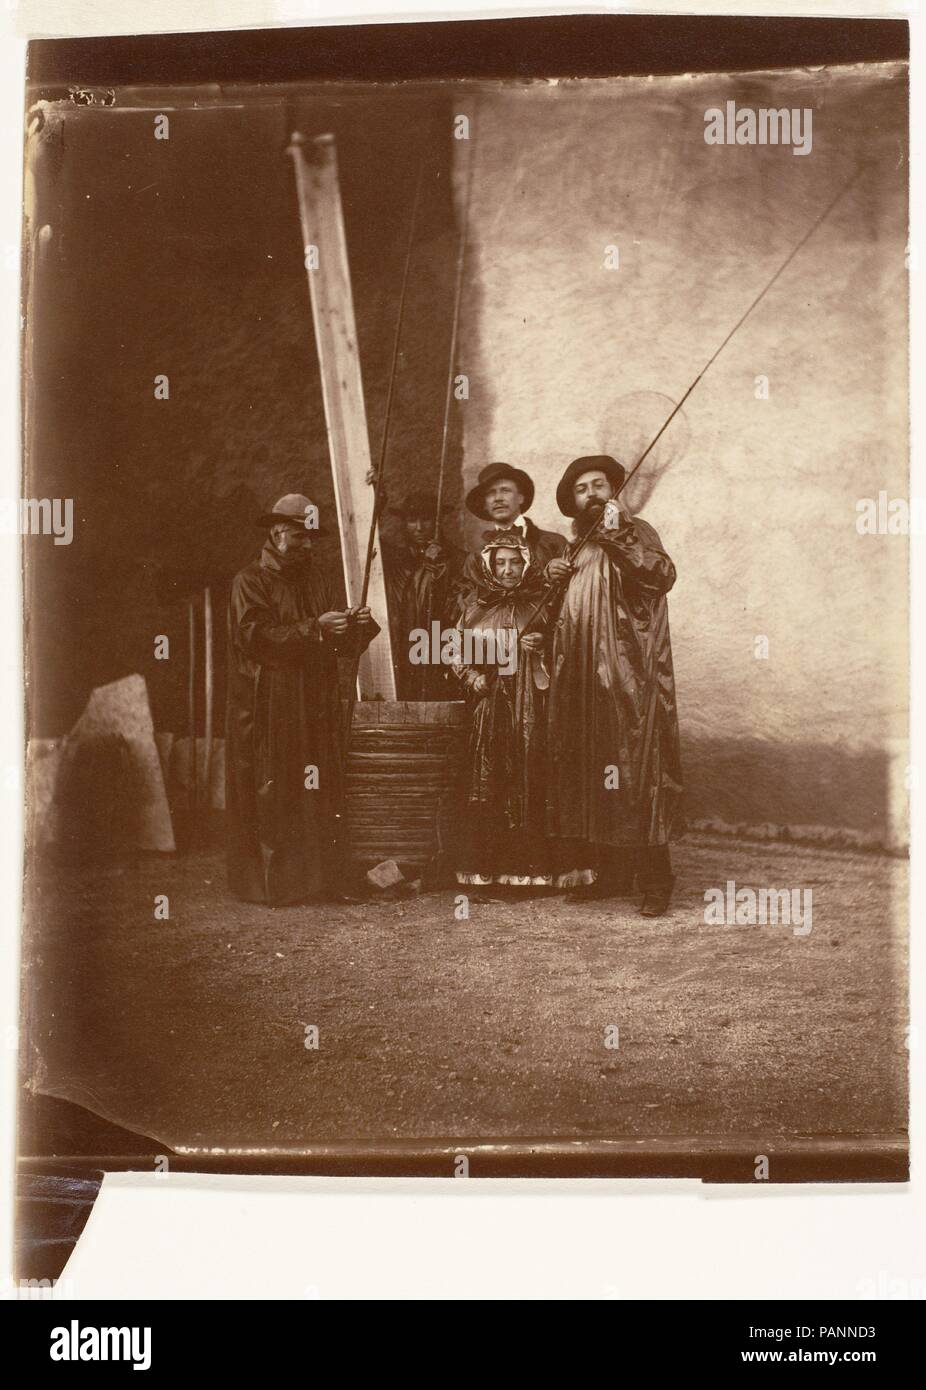 [The Artist, His Mother, and Friends in Fishing Garb]. Artist: Olympe Aguado de las Marismas (French, Paris 1827-1894 Compiegne). Dimensions: Image: 17.7 × 14.6 cm (6 15/16 × 5 3/4 in.)  Sheet: 19 × 14.6 cm (7 1/2 × 5 3/4 in.), irregularly trimmed. Date: ca. 1860.  The photographer Count Olympe Aguado de las Marismas was a wealthy aristocrat and a familiar figure at the court of Napoleon III. At an informal gathering at one of his country houses, Aguado posed his family and friends as fishermen, complete with long poles, a fine net, and foul-weather gear made of oilcloth. Although her elegant  - Stock Image